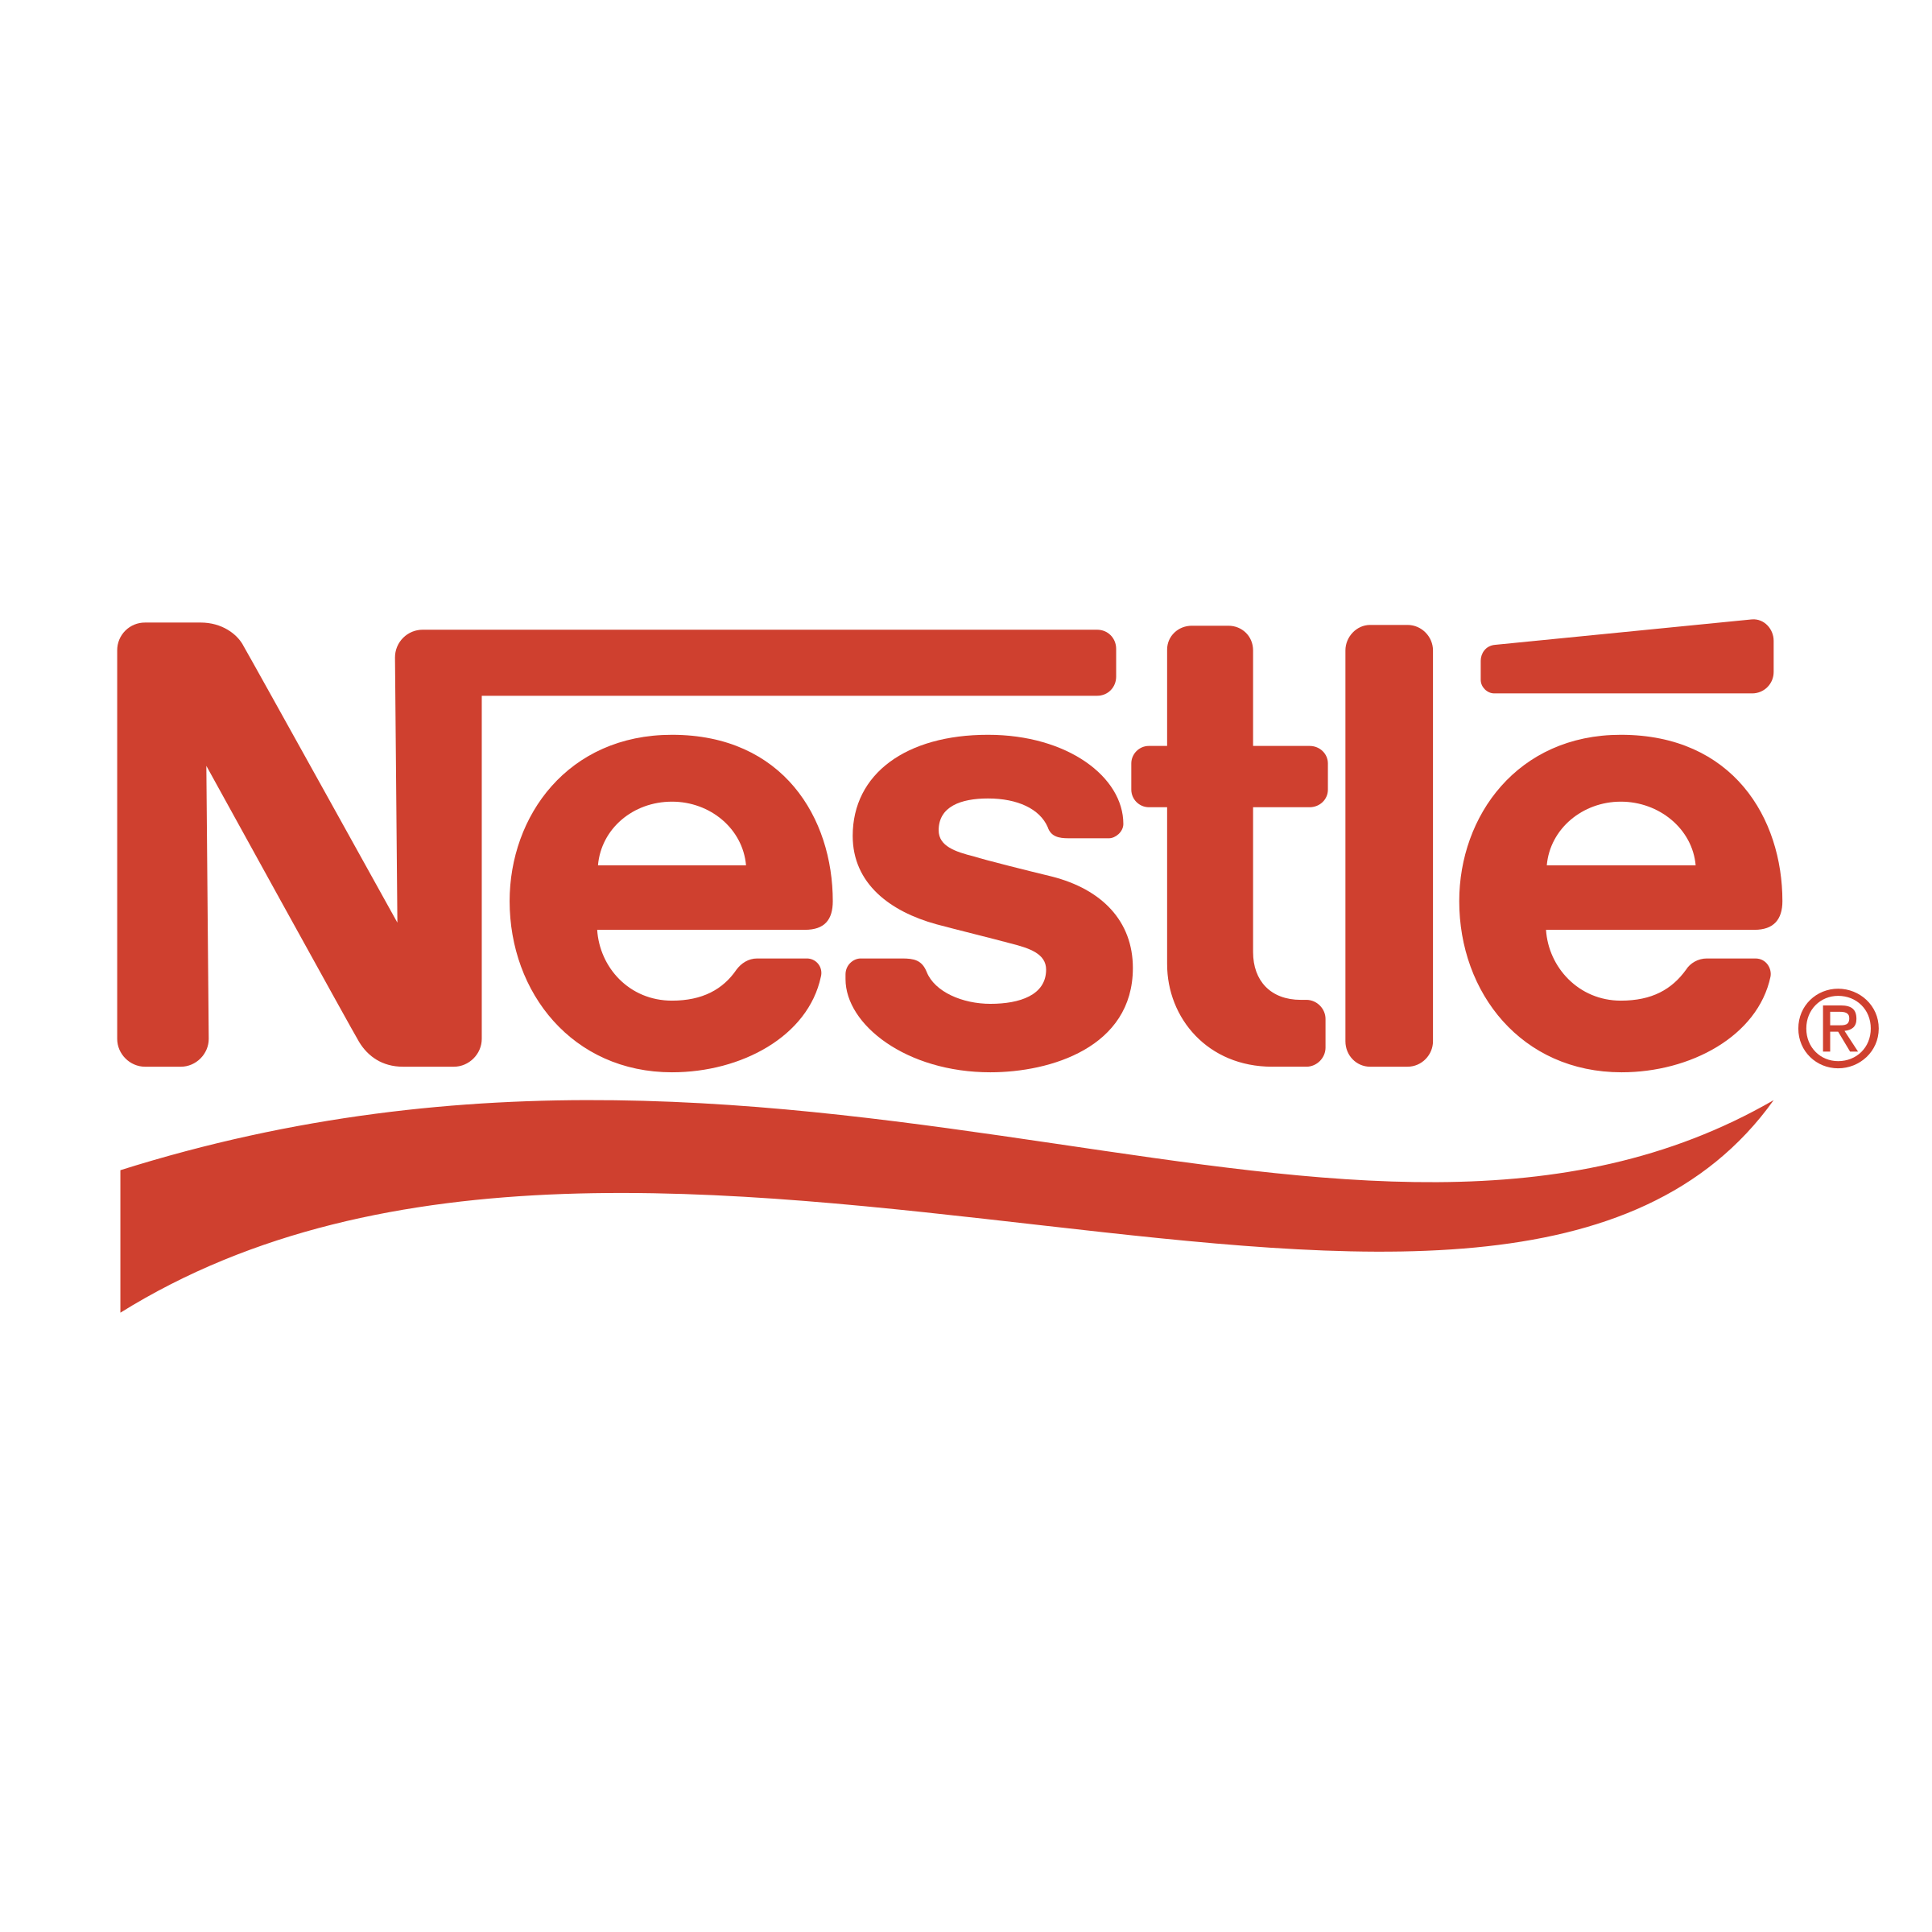 Nestle Chocolate Logo PNG Transparent & SVG Vector.